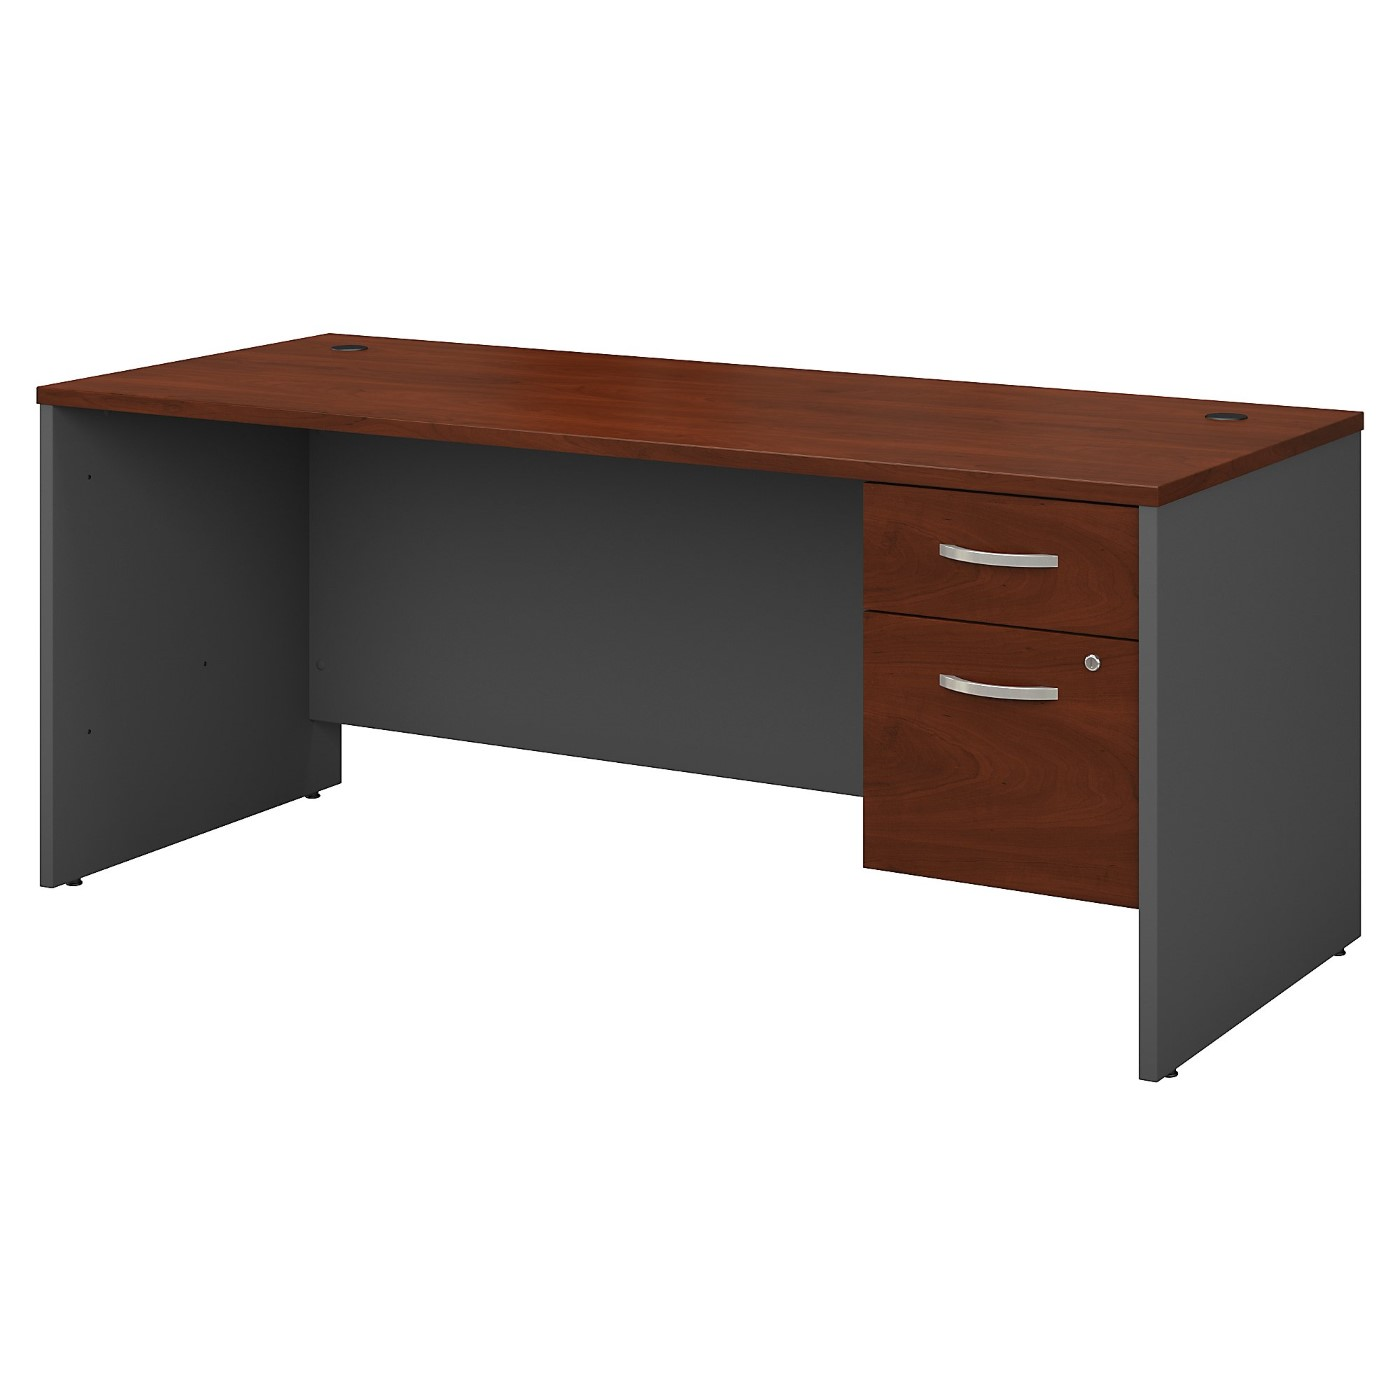 BUSH BUSINESS FURNITURE SERIES C 72W X 30D OFFICE DESK WITH 3/4 PEDESTAL. FREE SHIPPING